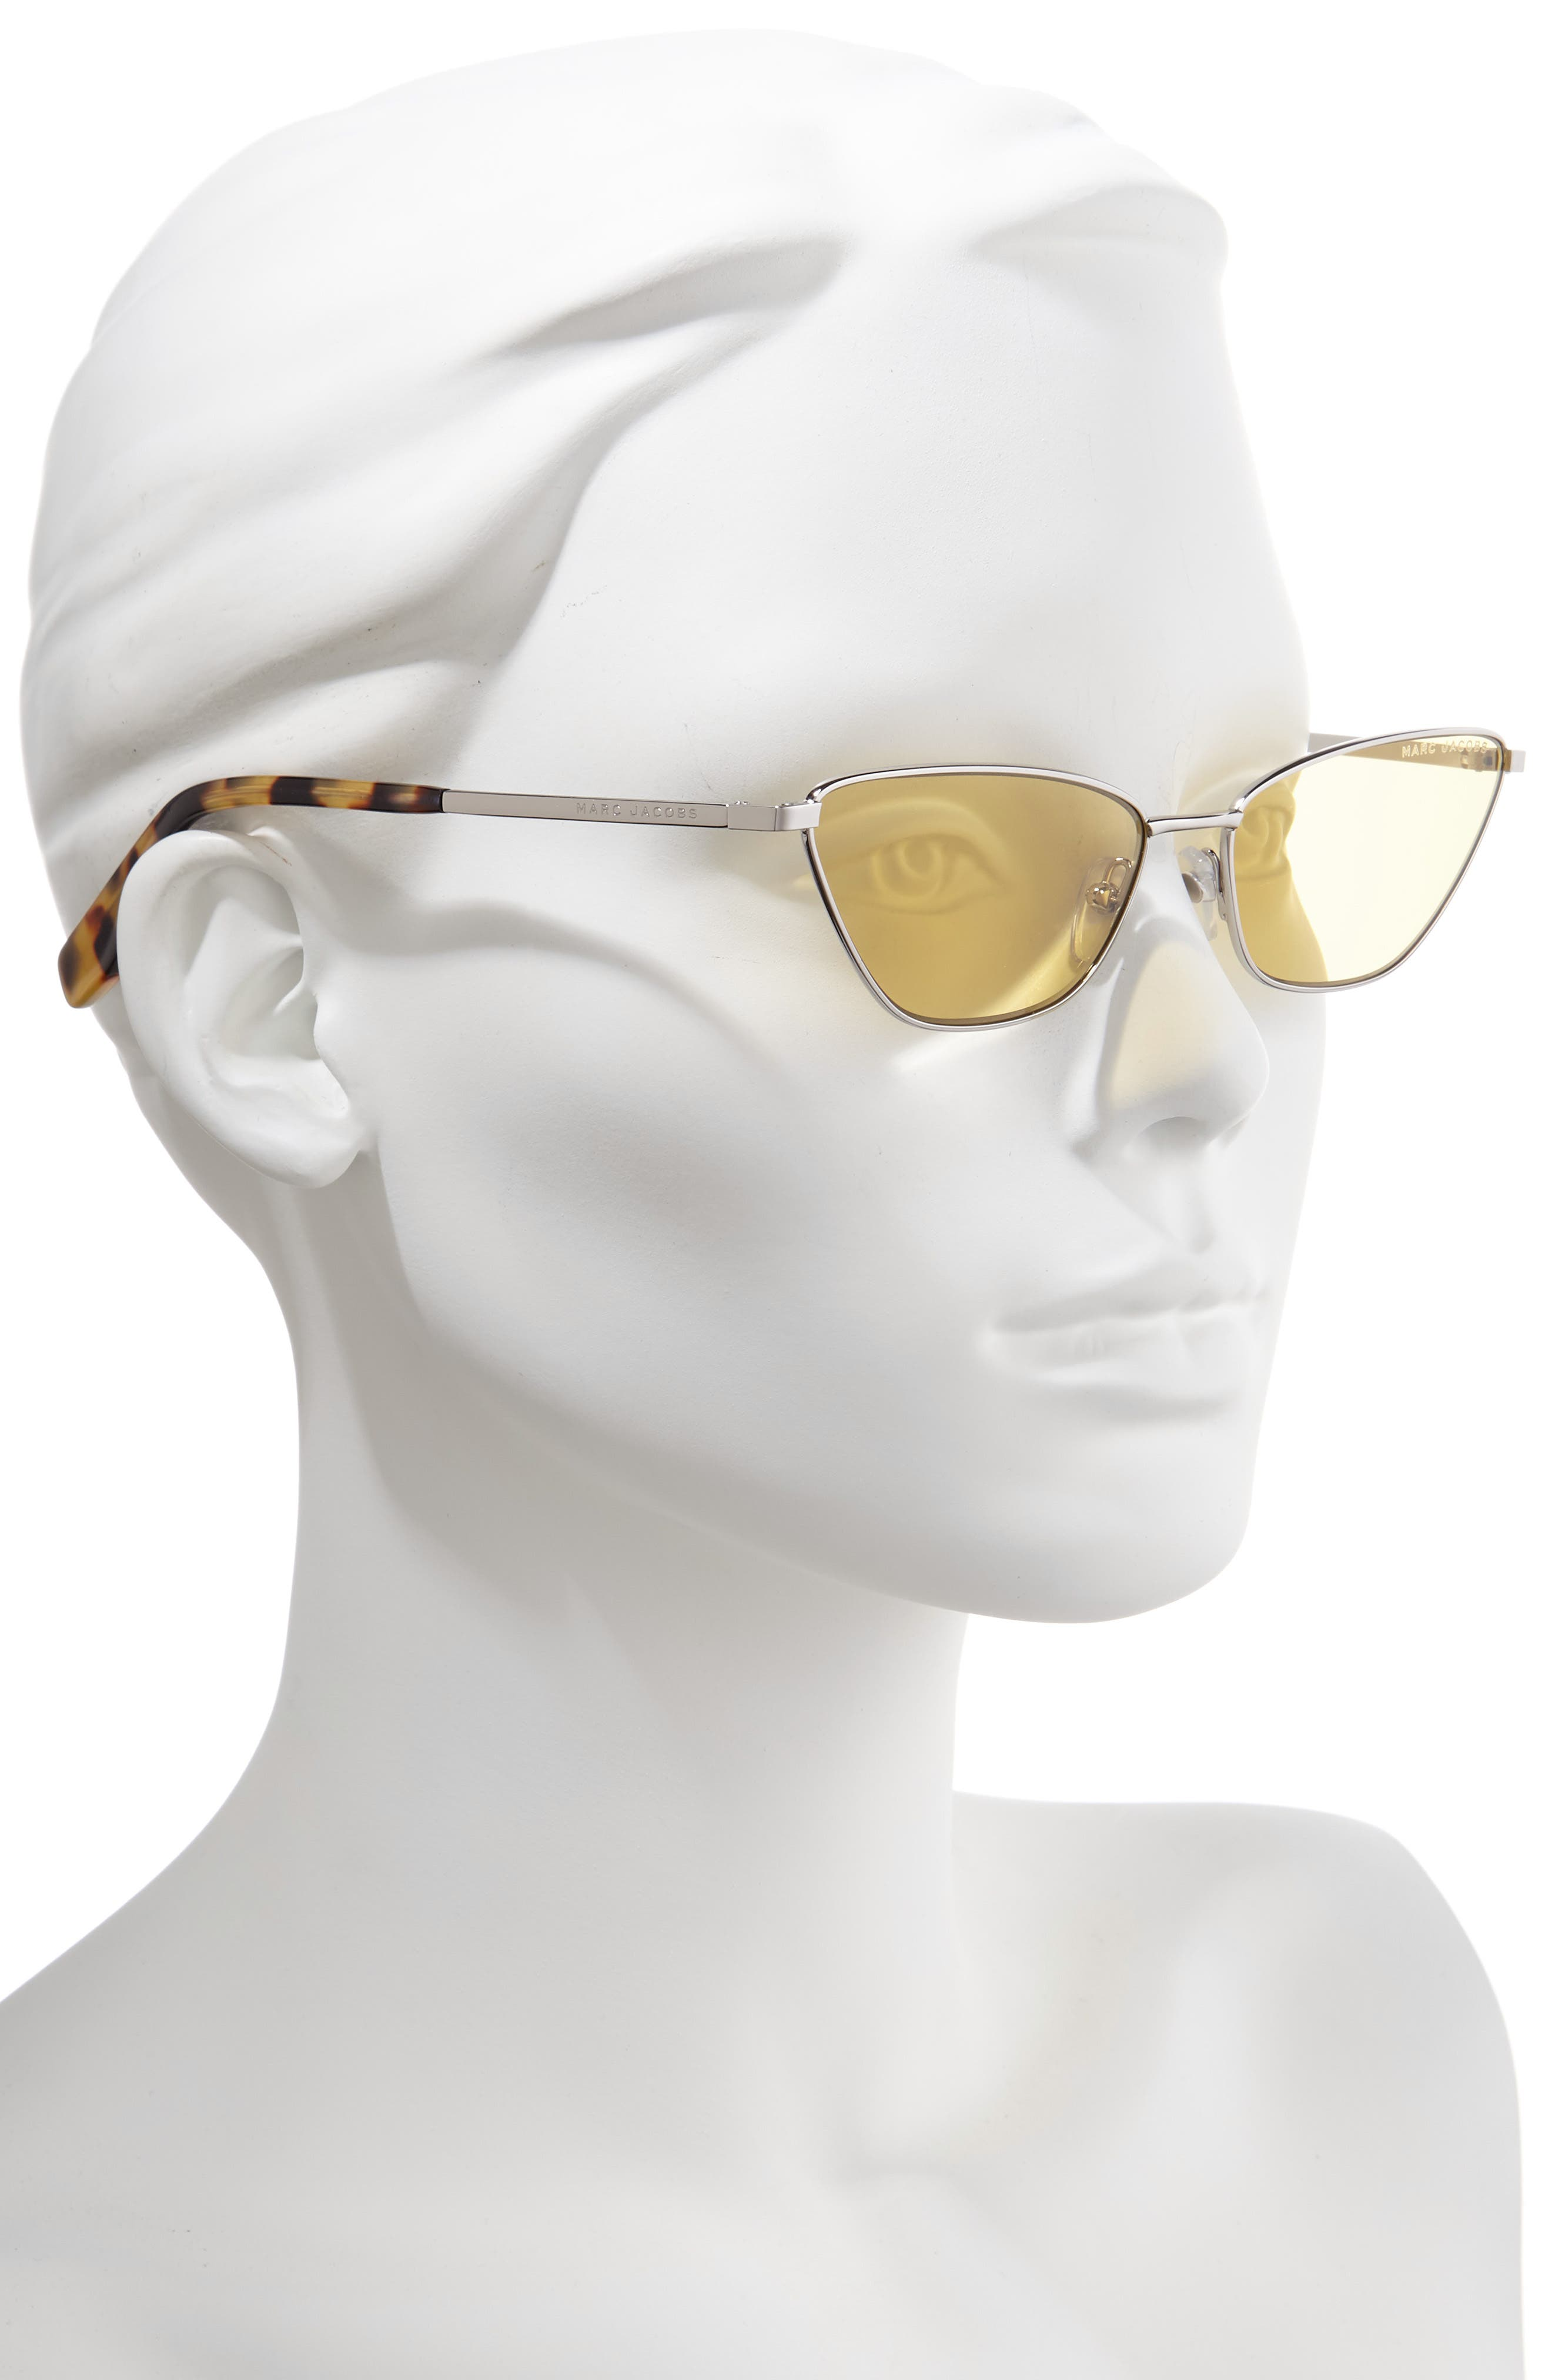 MARC JACOBS, 57mm Cat Eye Sunglasses, Alternate thumbnail 2, color, SILVER/ YELLOW